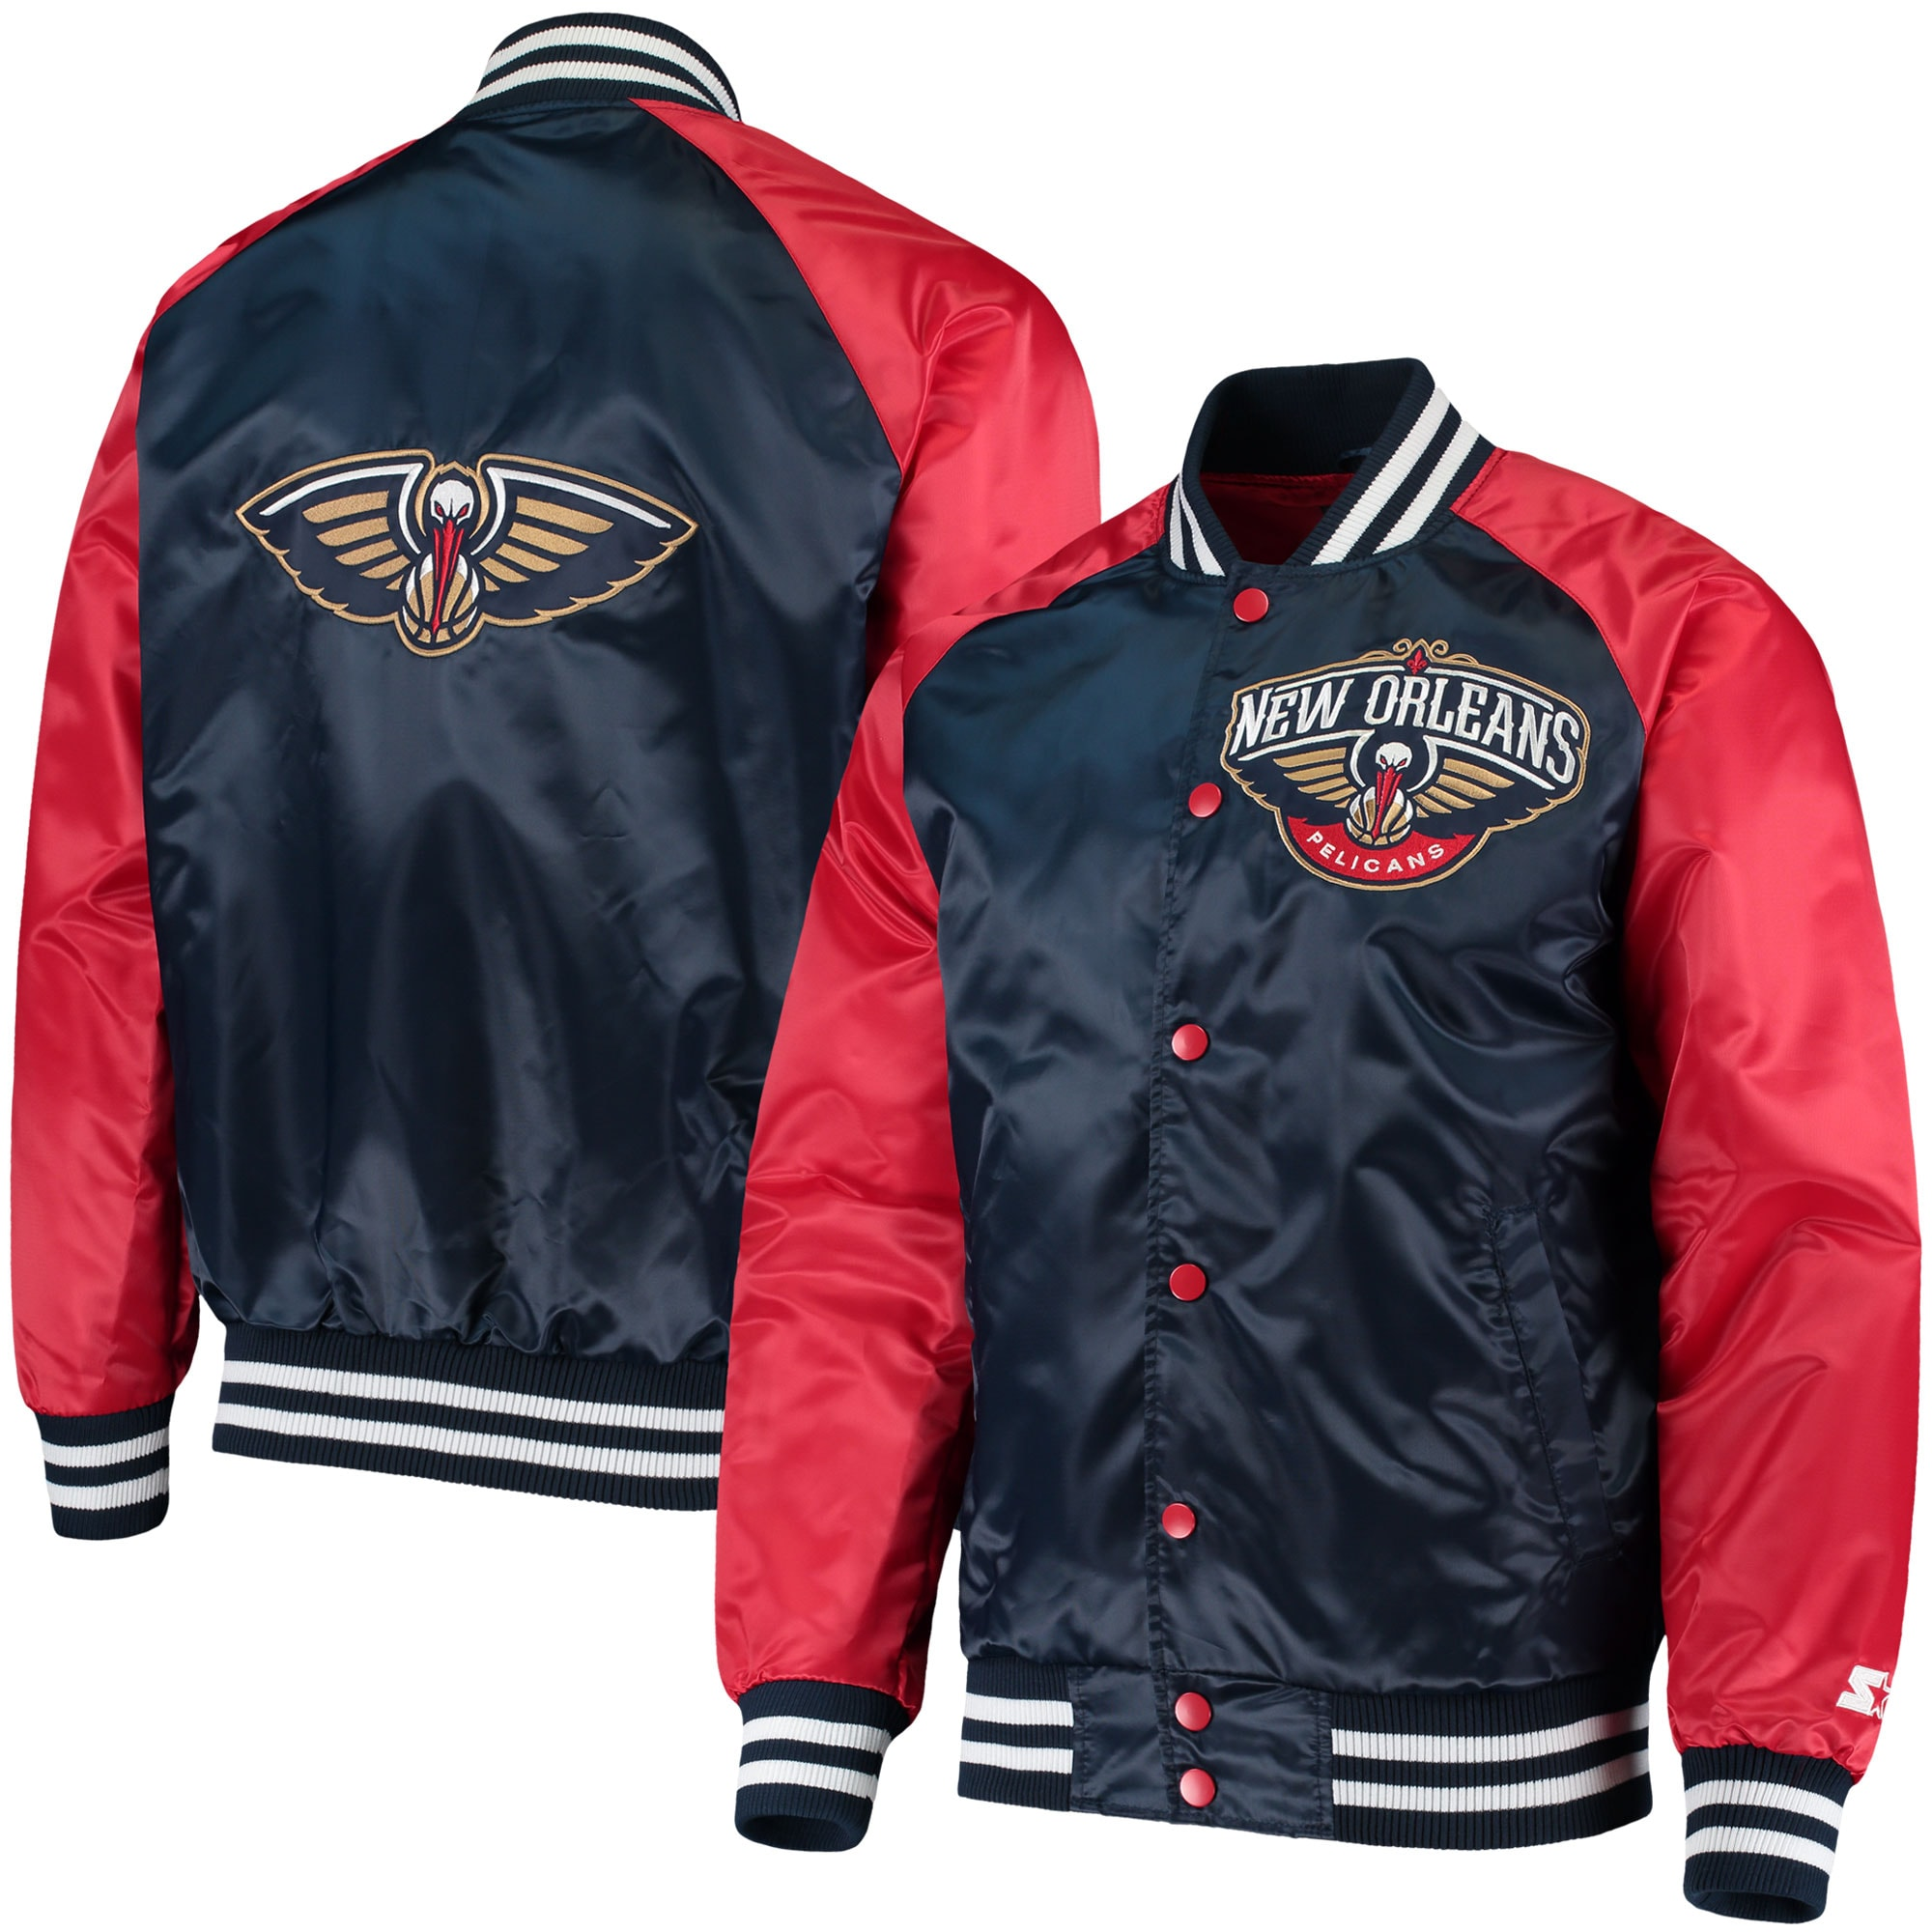 New Orleans Pelicans Starter Point Guard Satin Full-Snap Jacket - Navy/Red